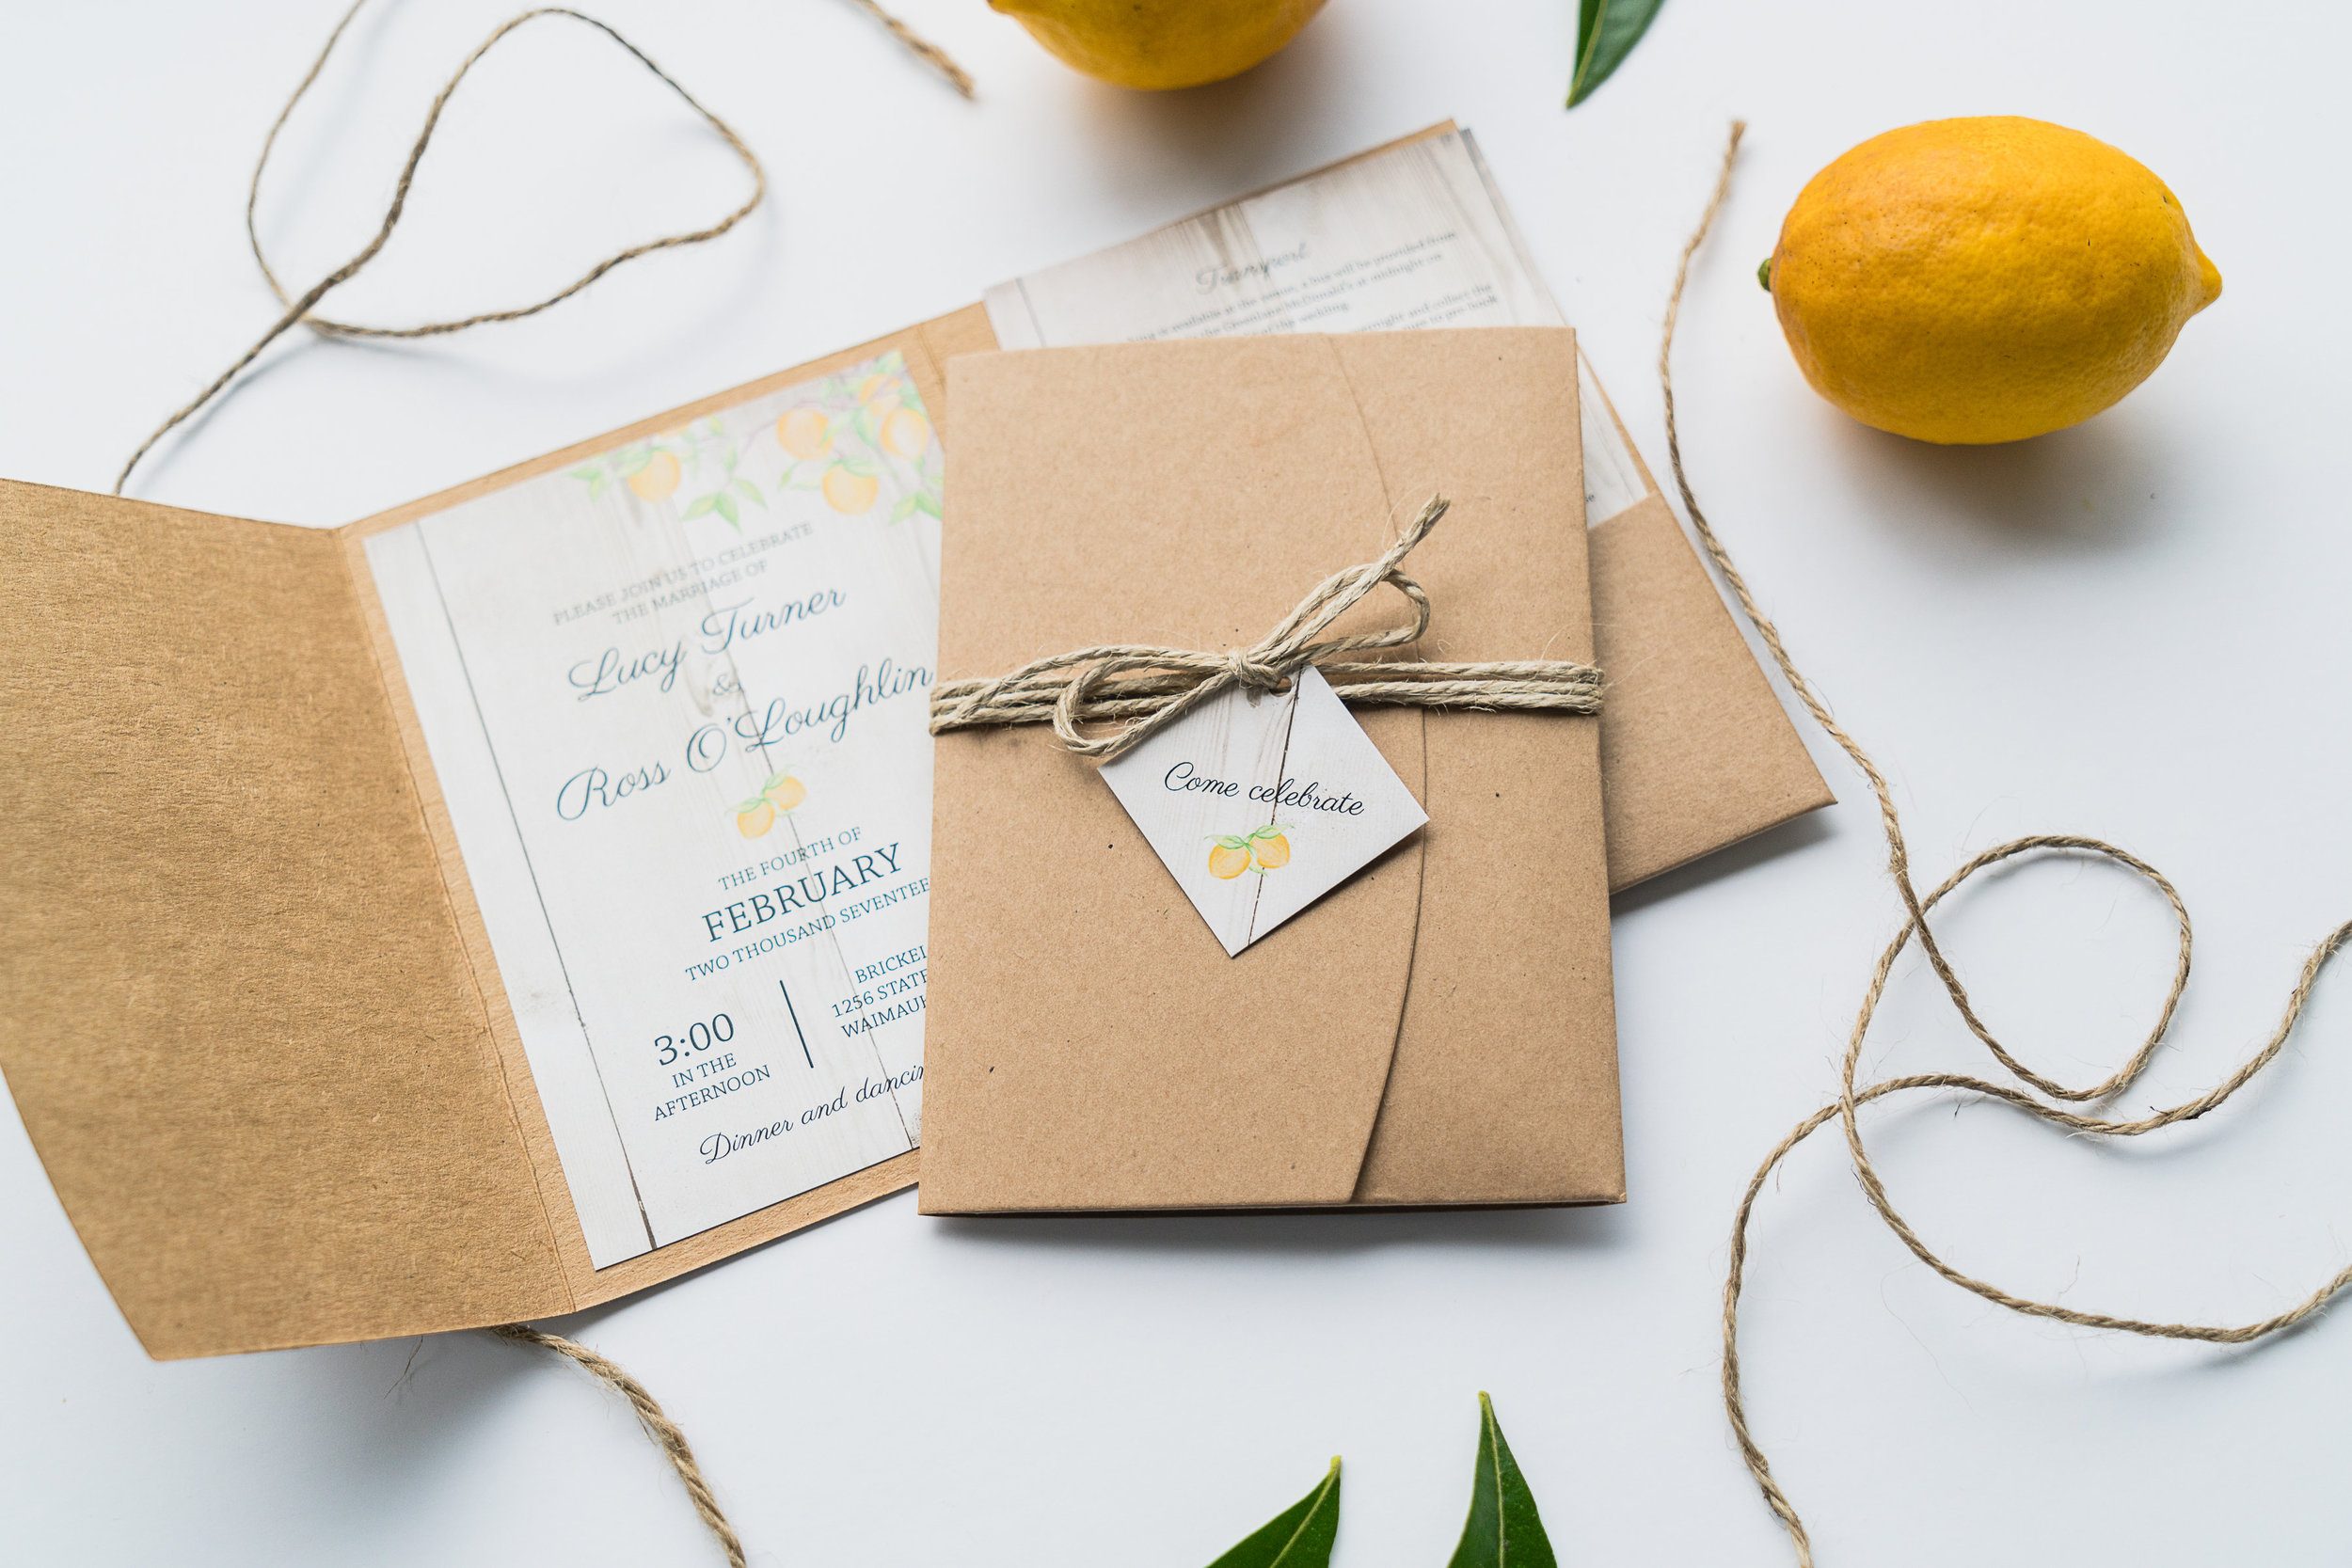 Invitations by Creative Box    Image by Brooke Baker; Photo Taker, Magic Maker